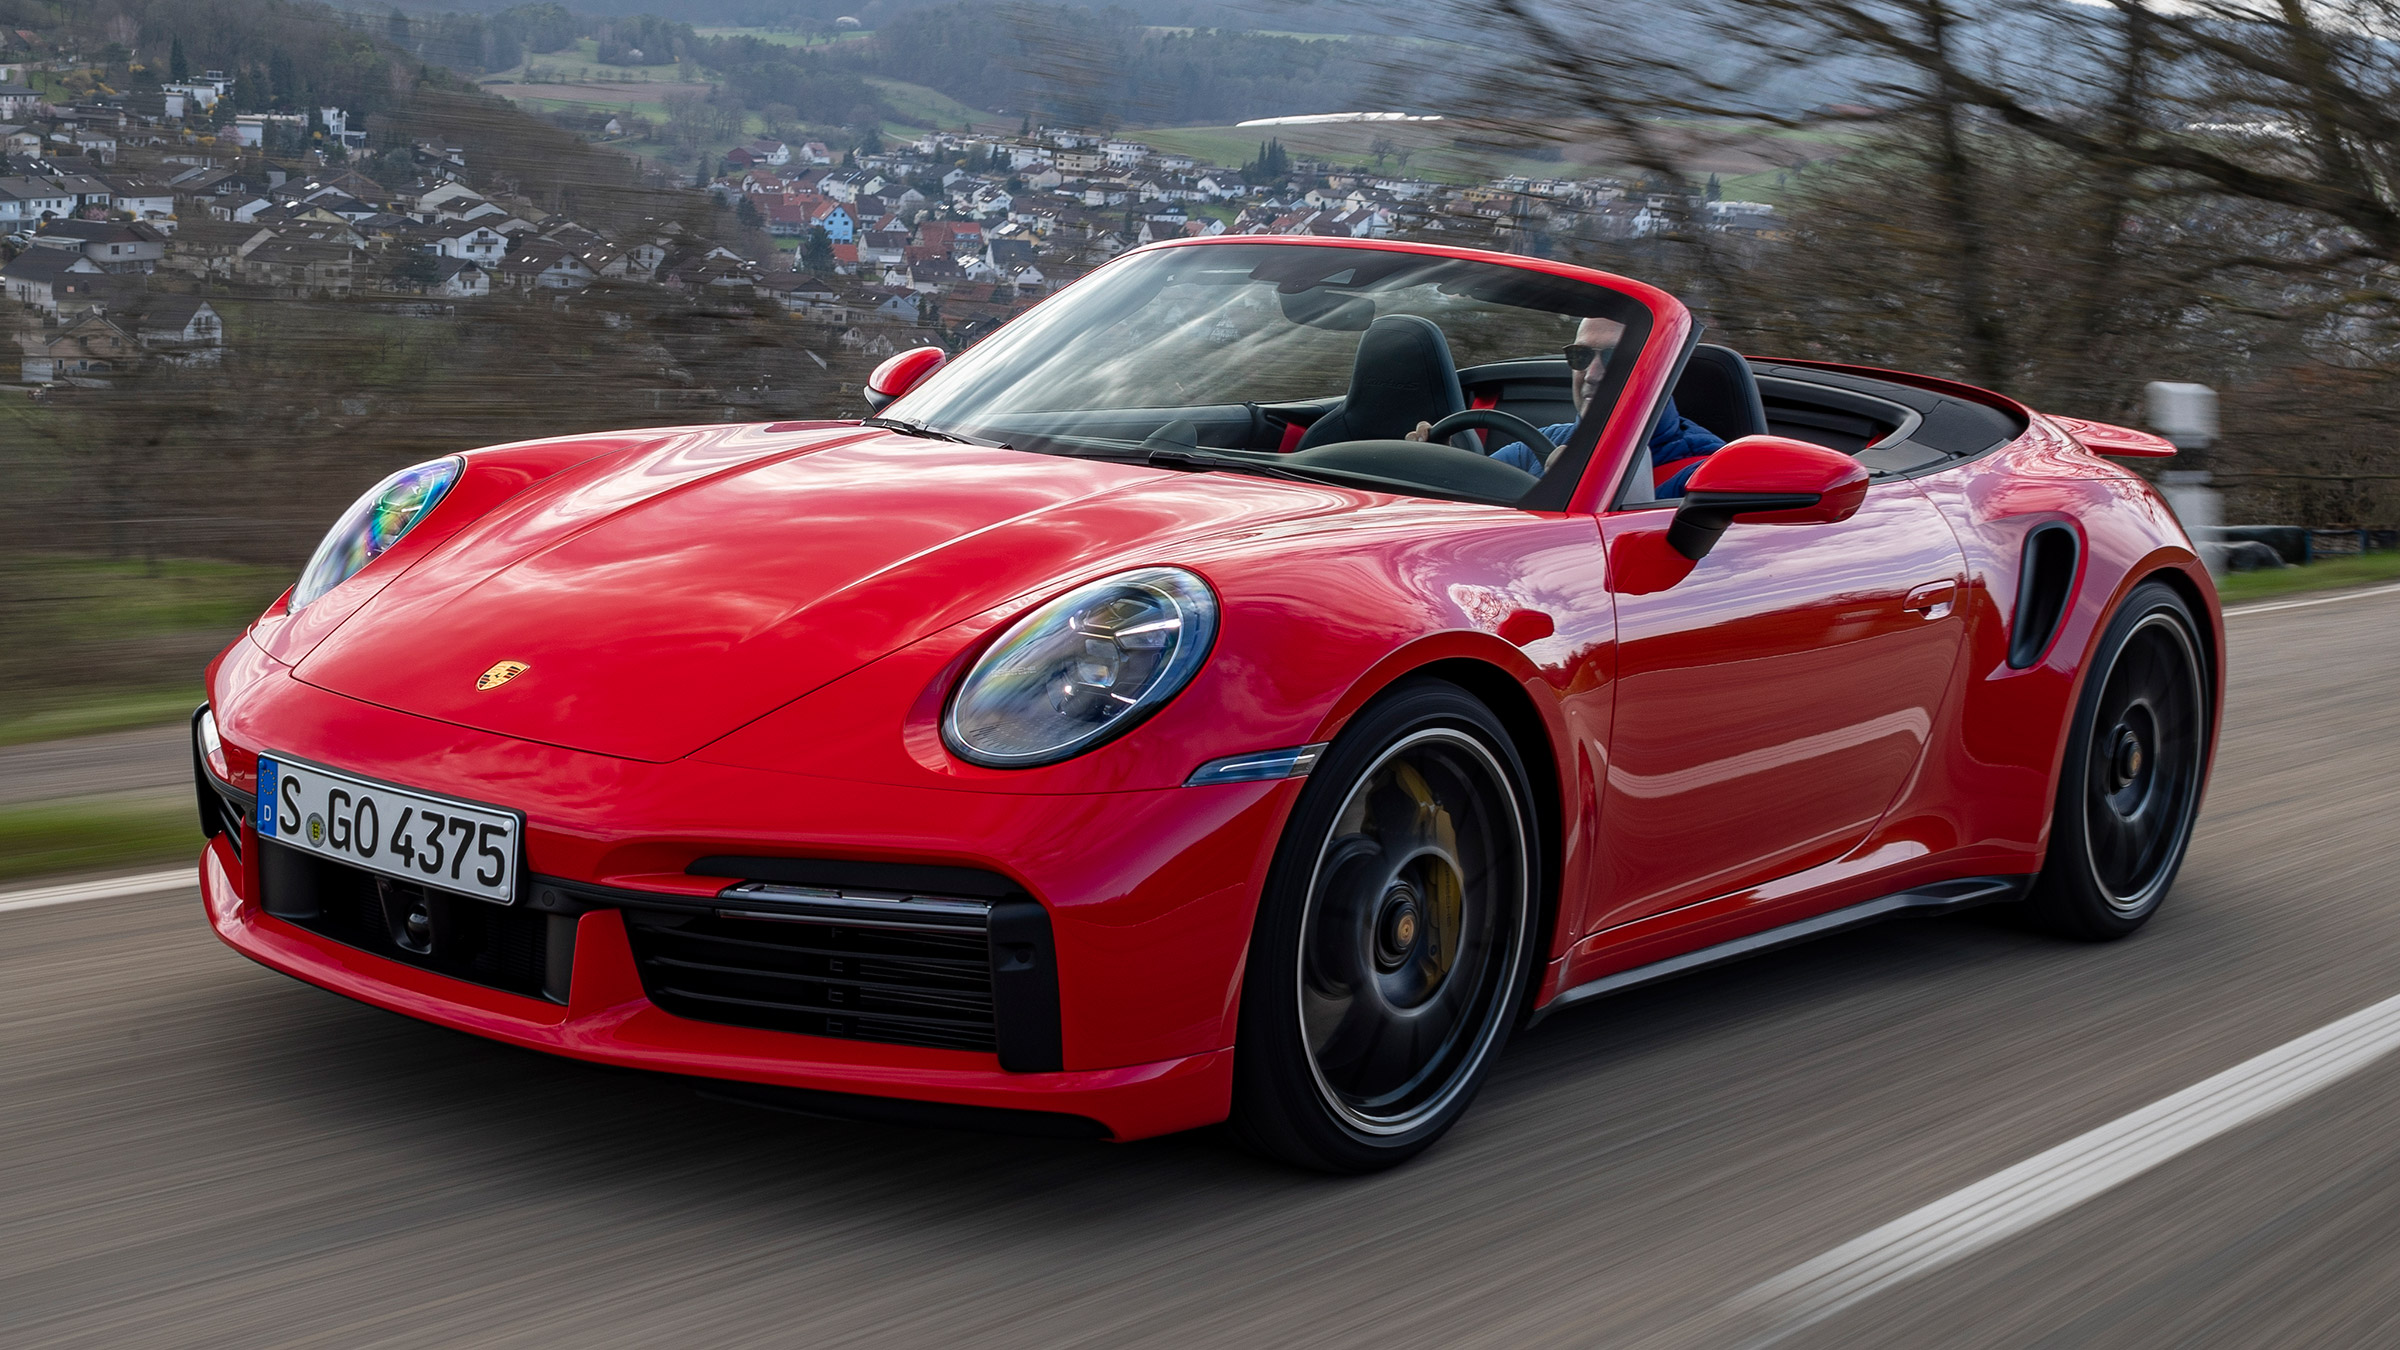 New Porsche 911 Turbo S Cabriolet 2020 Review Auto Express